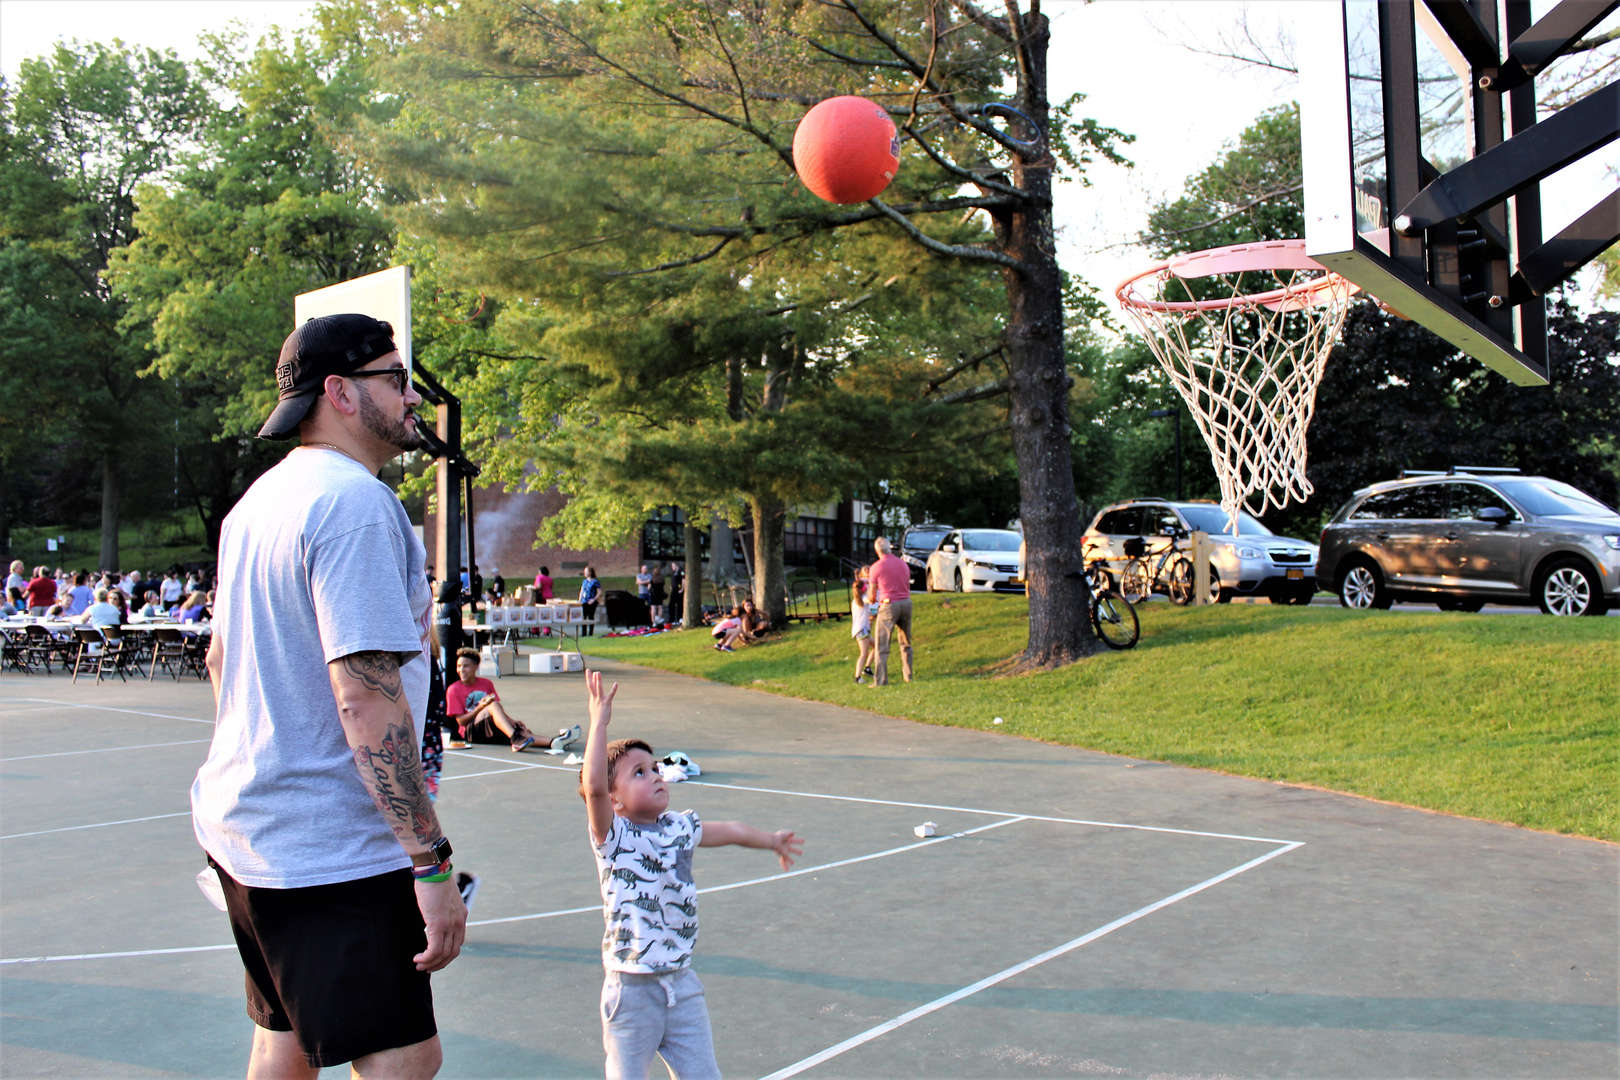 A father and son play basketball.